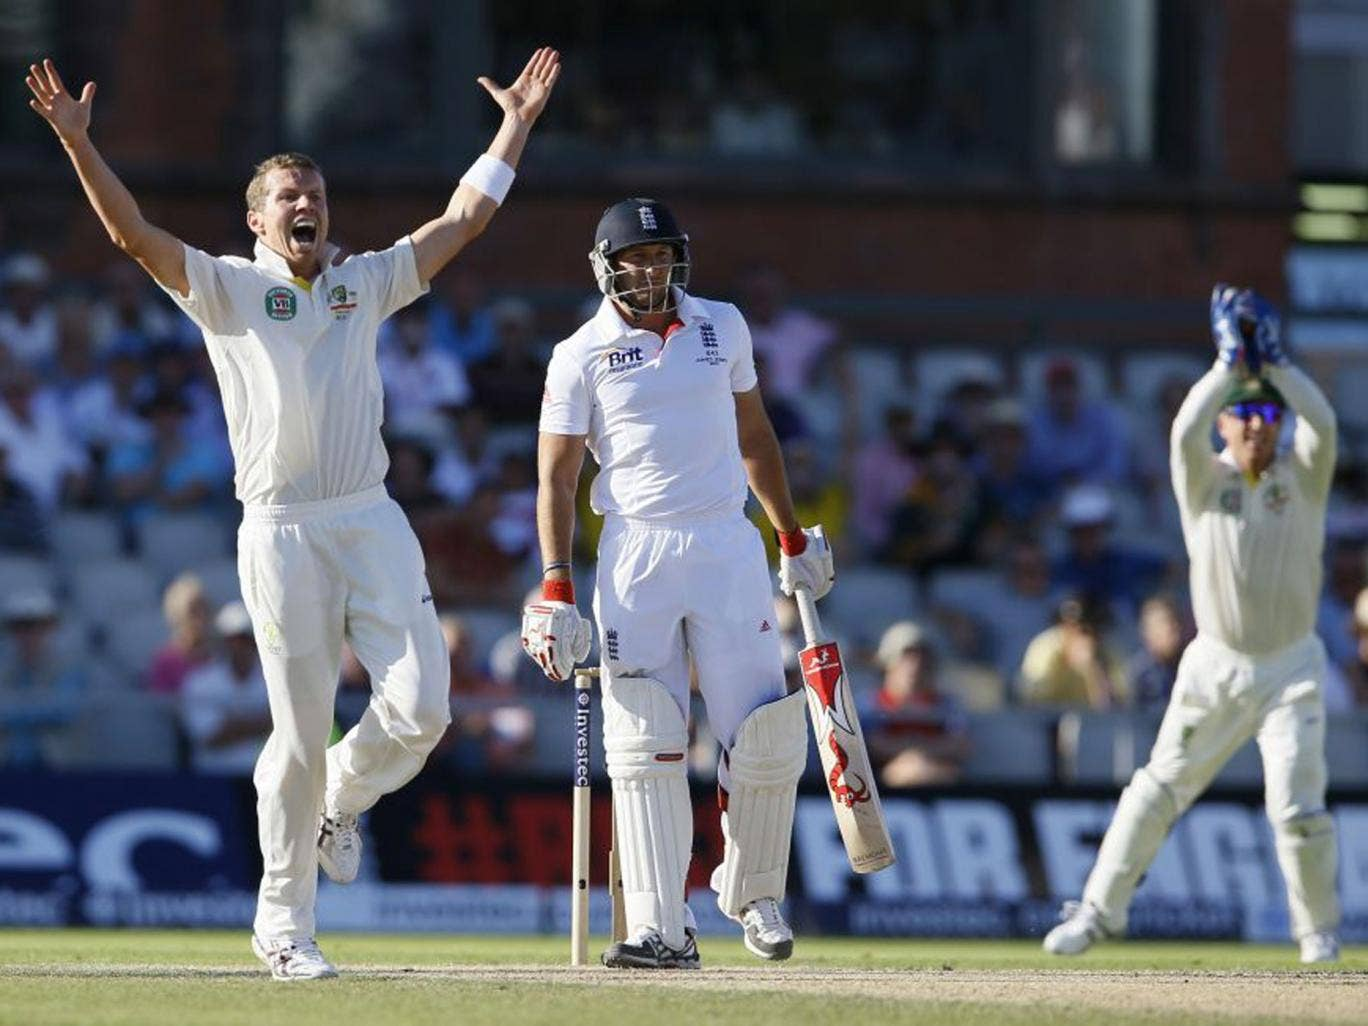 Peter Siddle appeals successfully for the wicket of Tim Bresnan late in the day